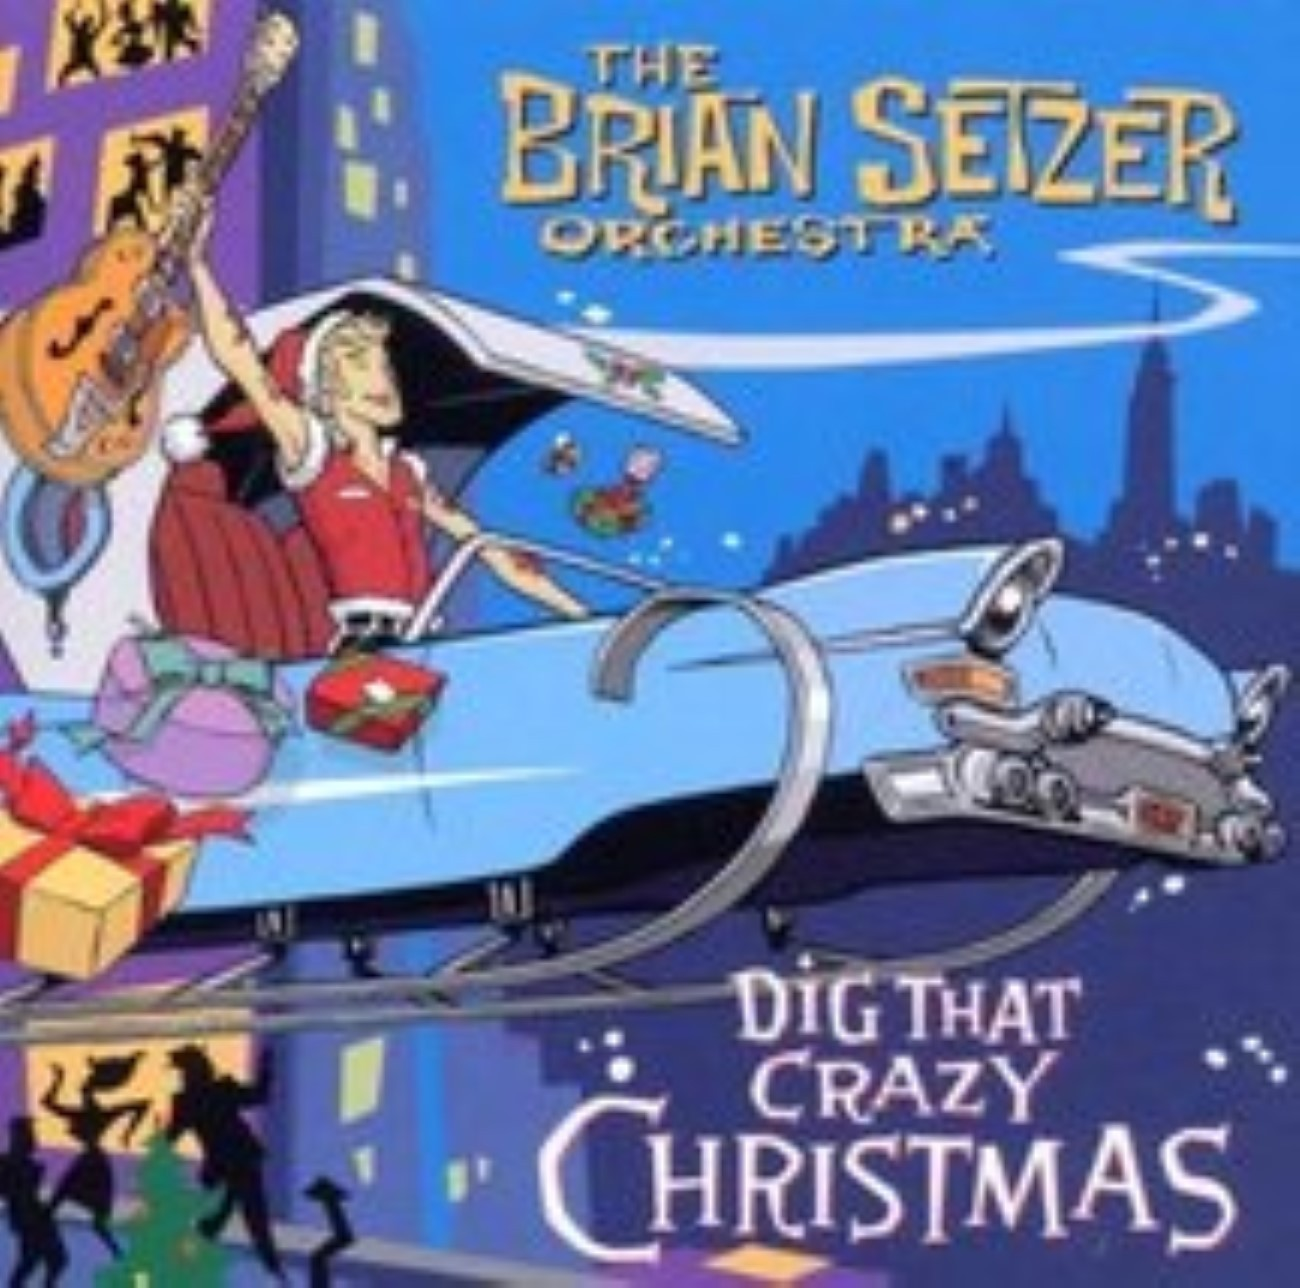 Dig That Crazy Christmas by Brian Orchestra Setzer Cd